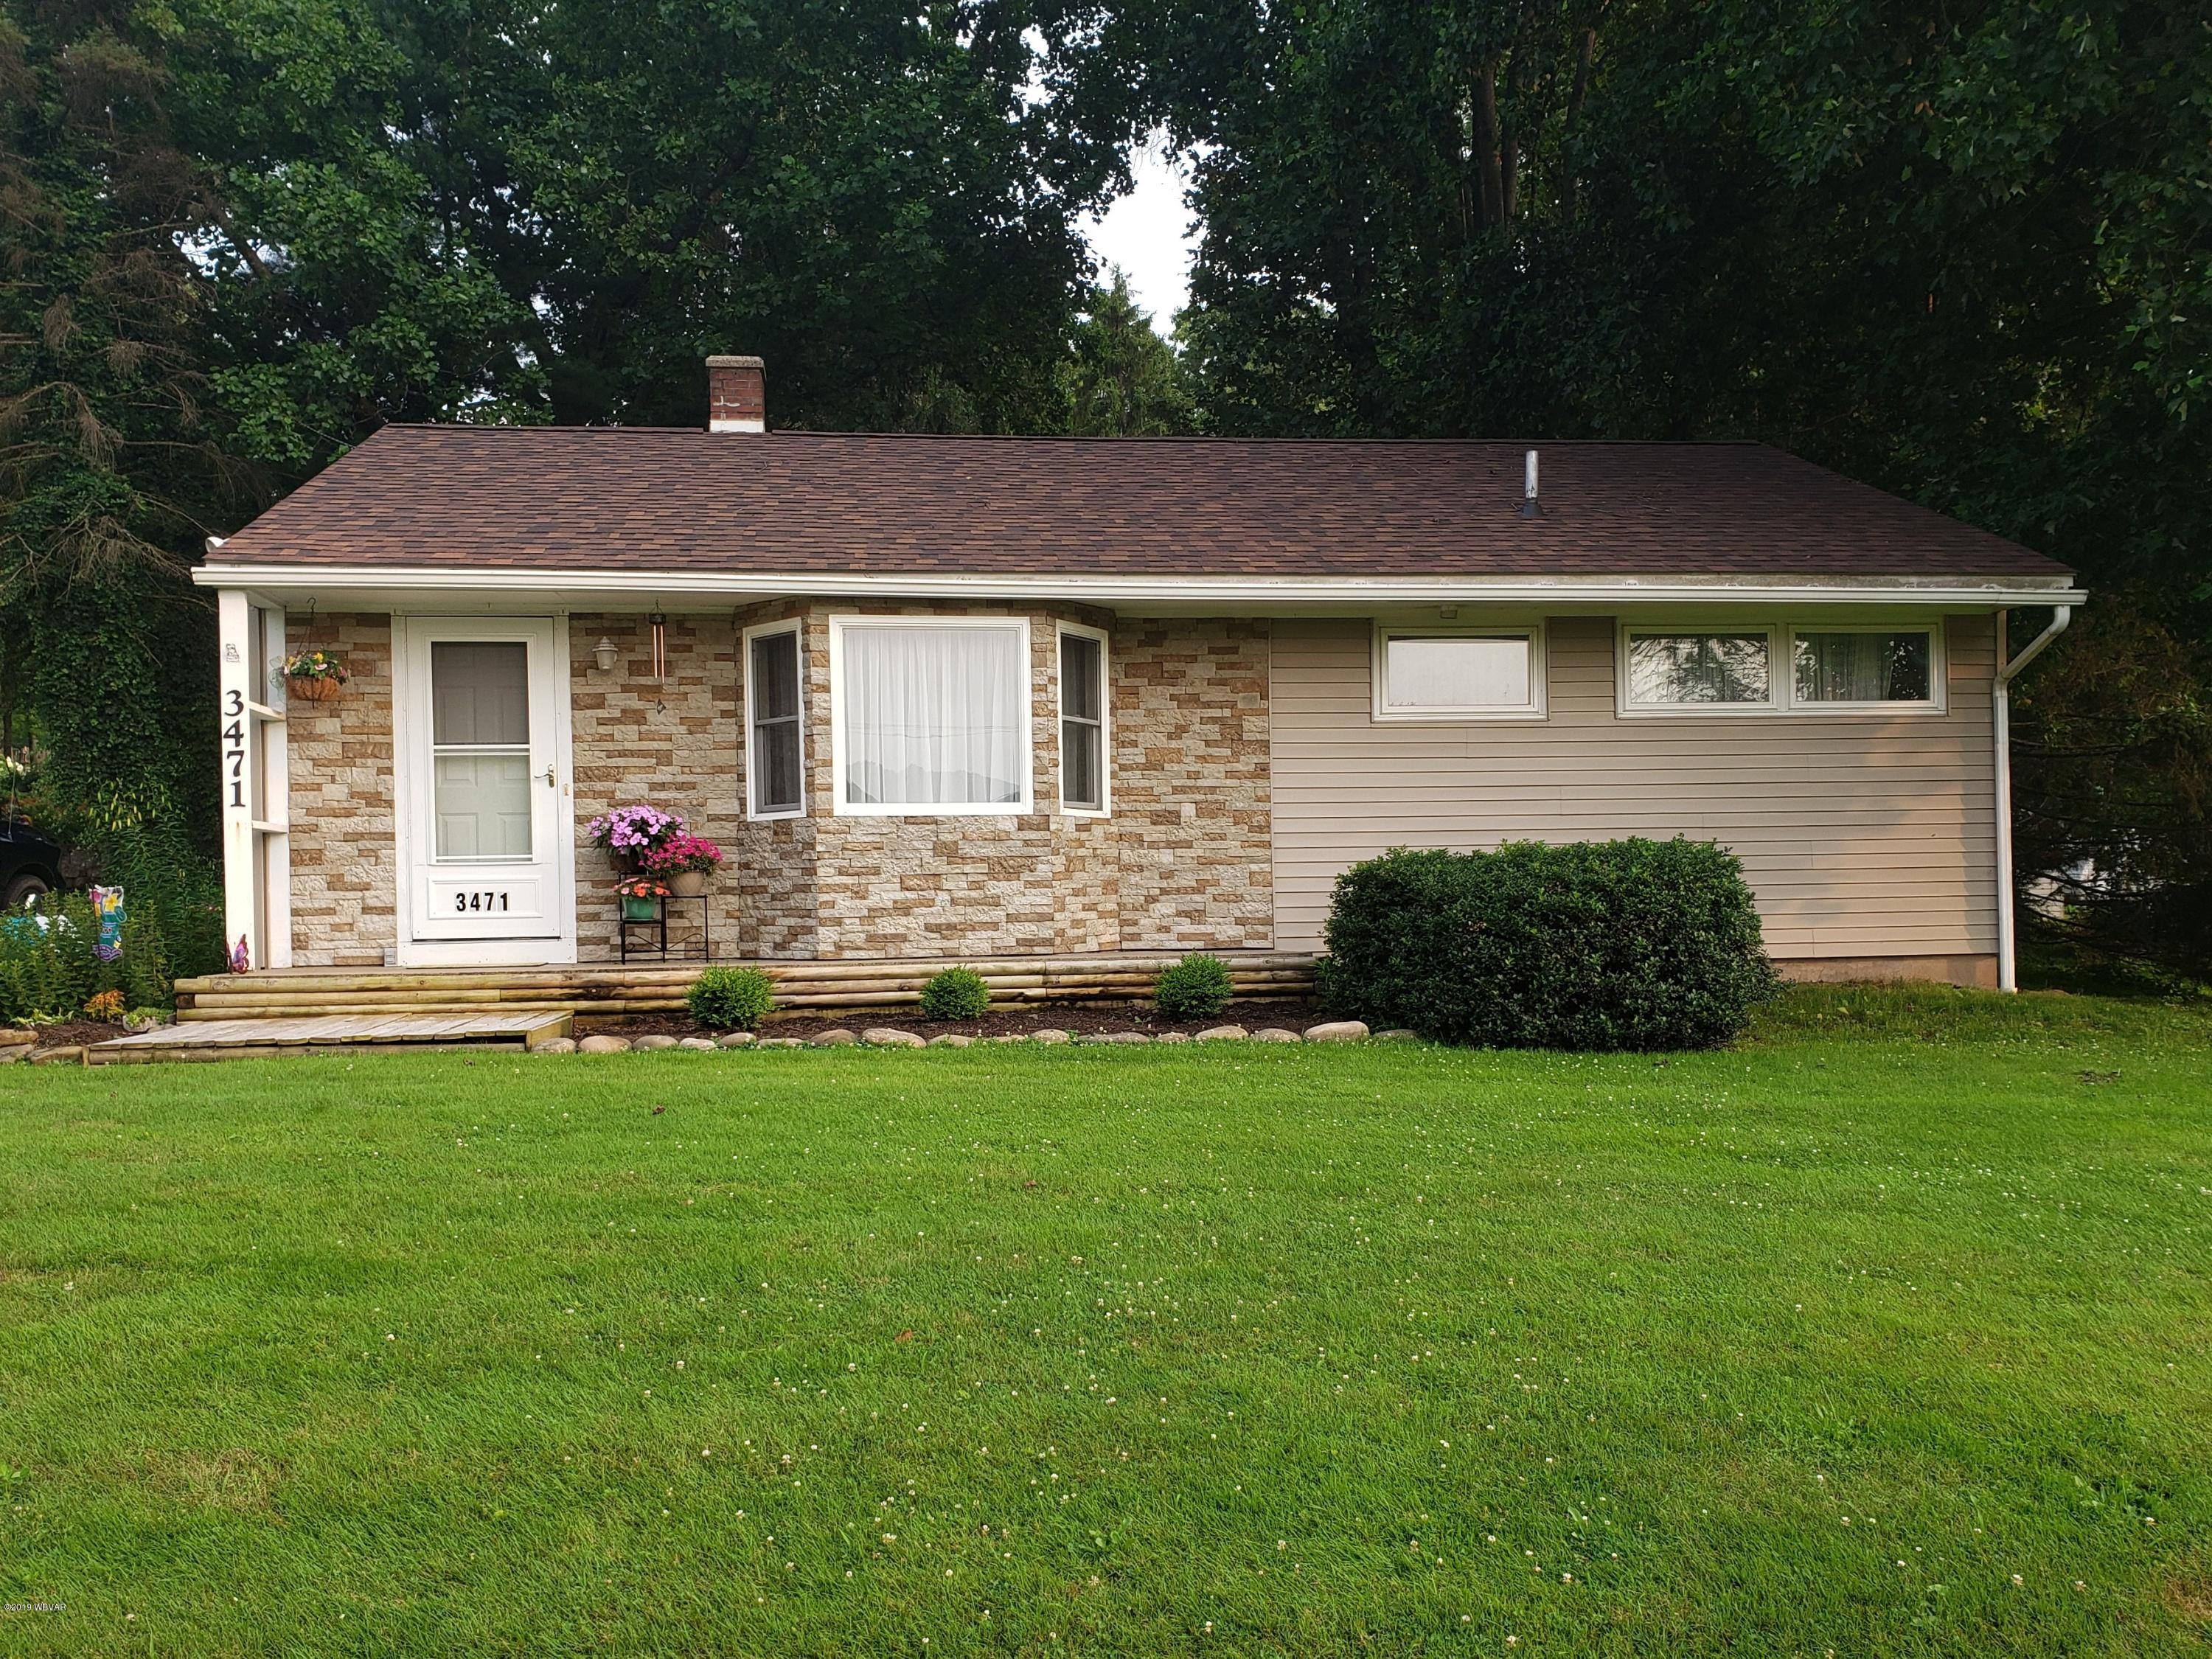 3471 LYCOMING MALL DRIVE,Montoursville,PA 17754,2 Bedrooms Bedrooms,1 BathroomBathrooms,Residential,LYCOMING MALL,WB-87977